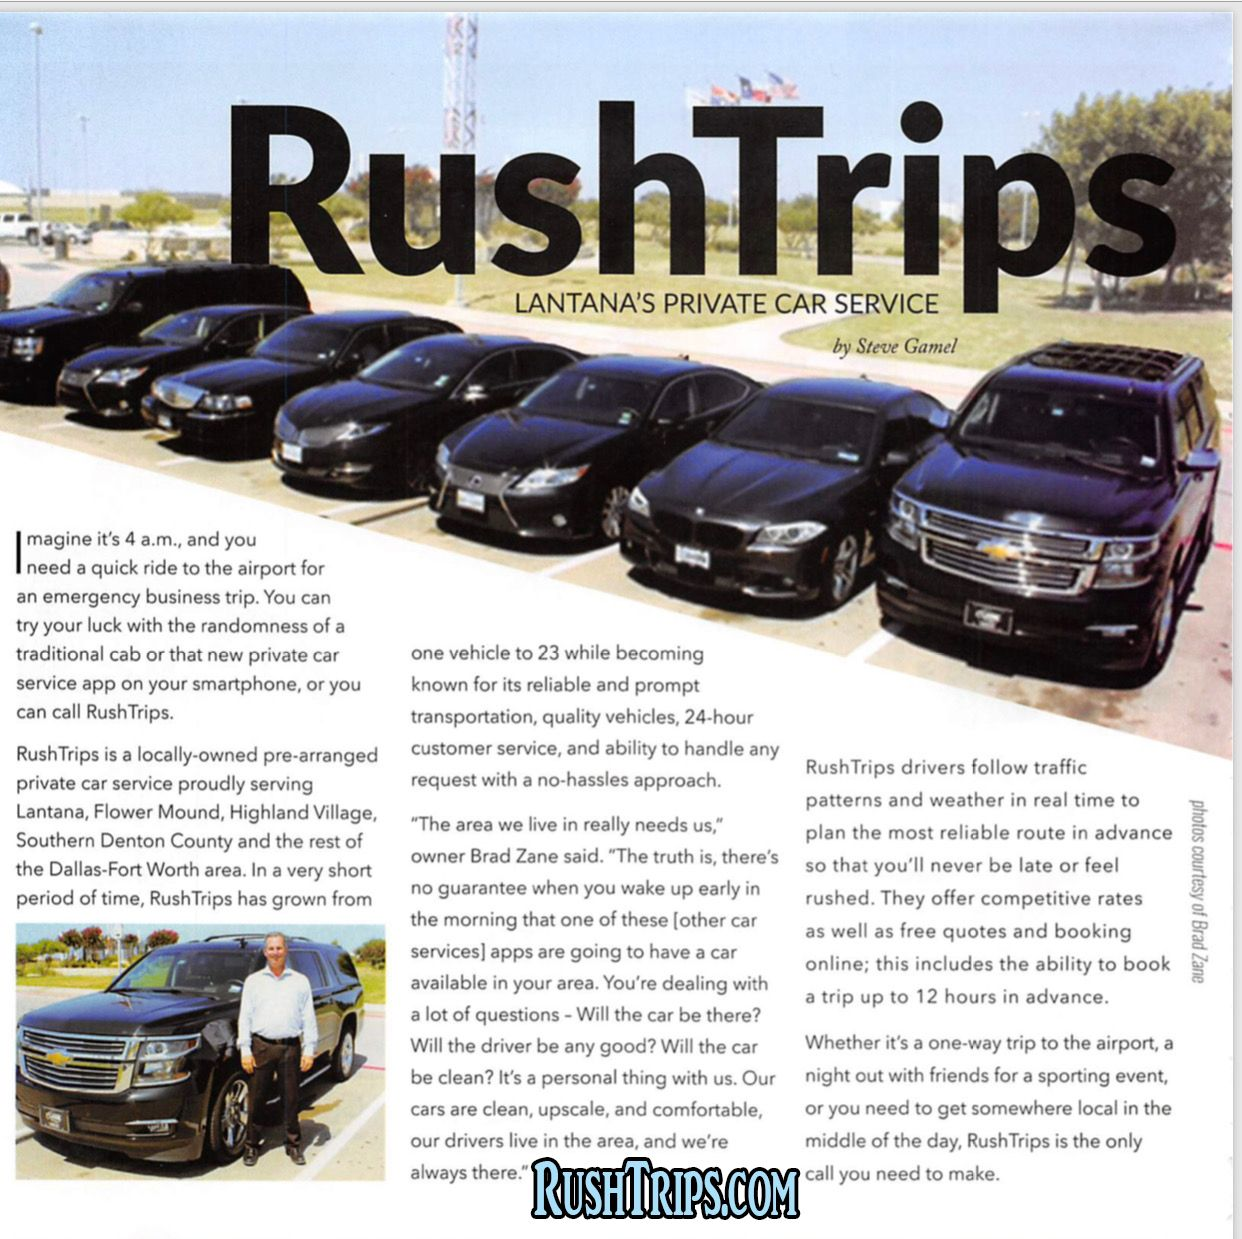 Rushtrips Transportation Llc Is A Private Car Service Based Right